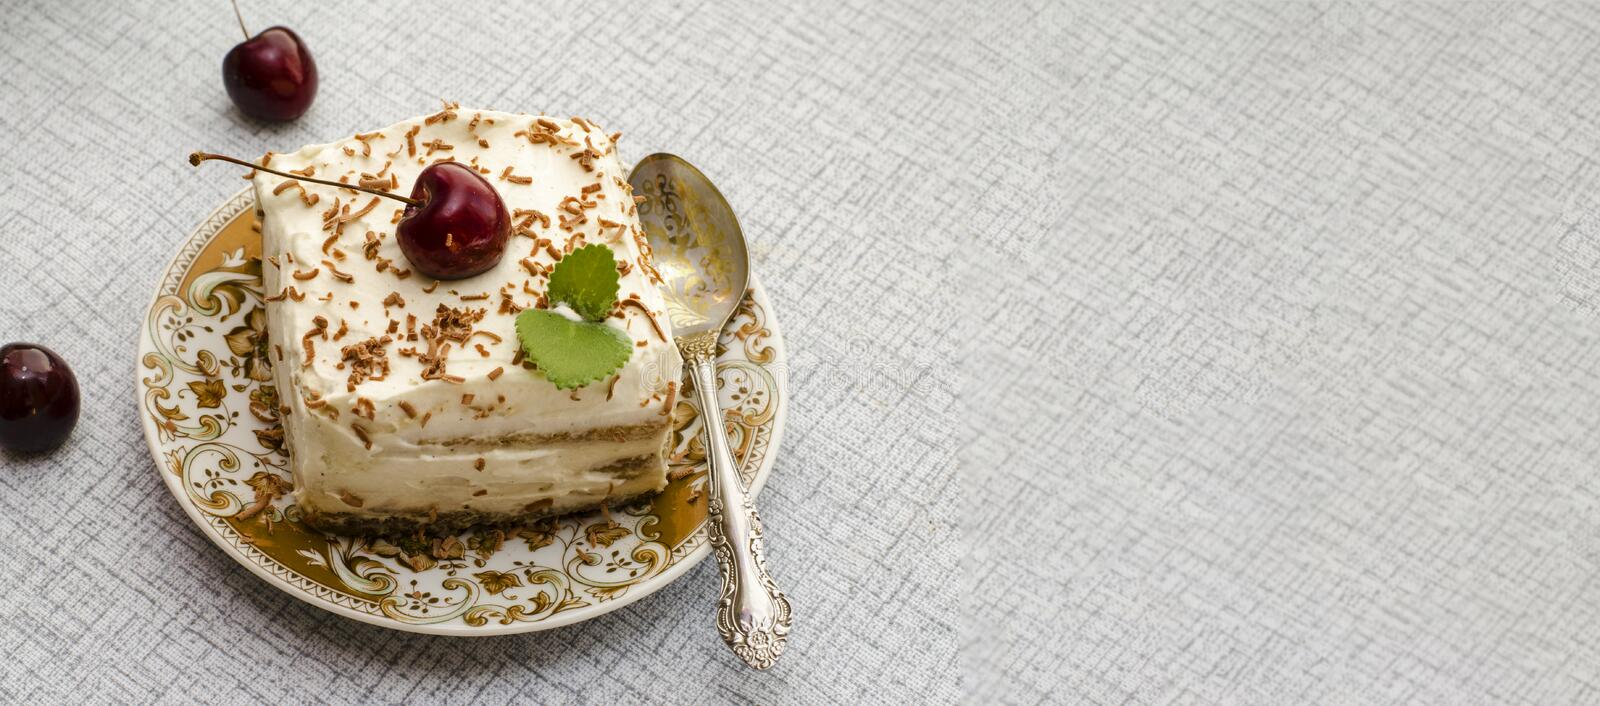 Tiramisu, un dessert italien traditionnel dans un fond clair Plan rapproch? photo stock